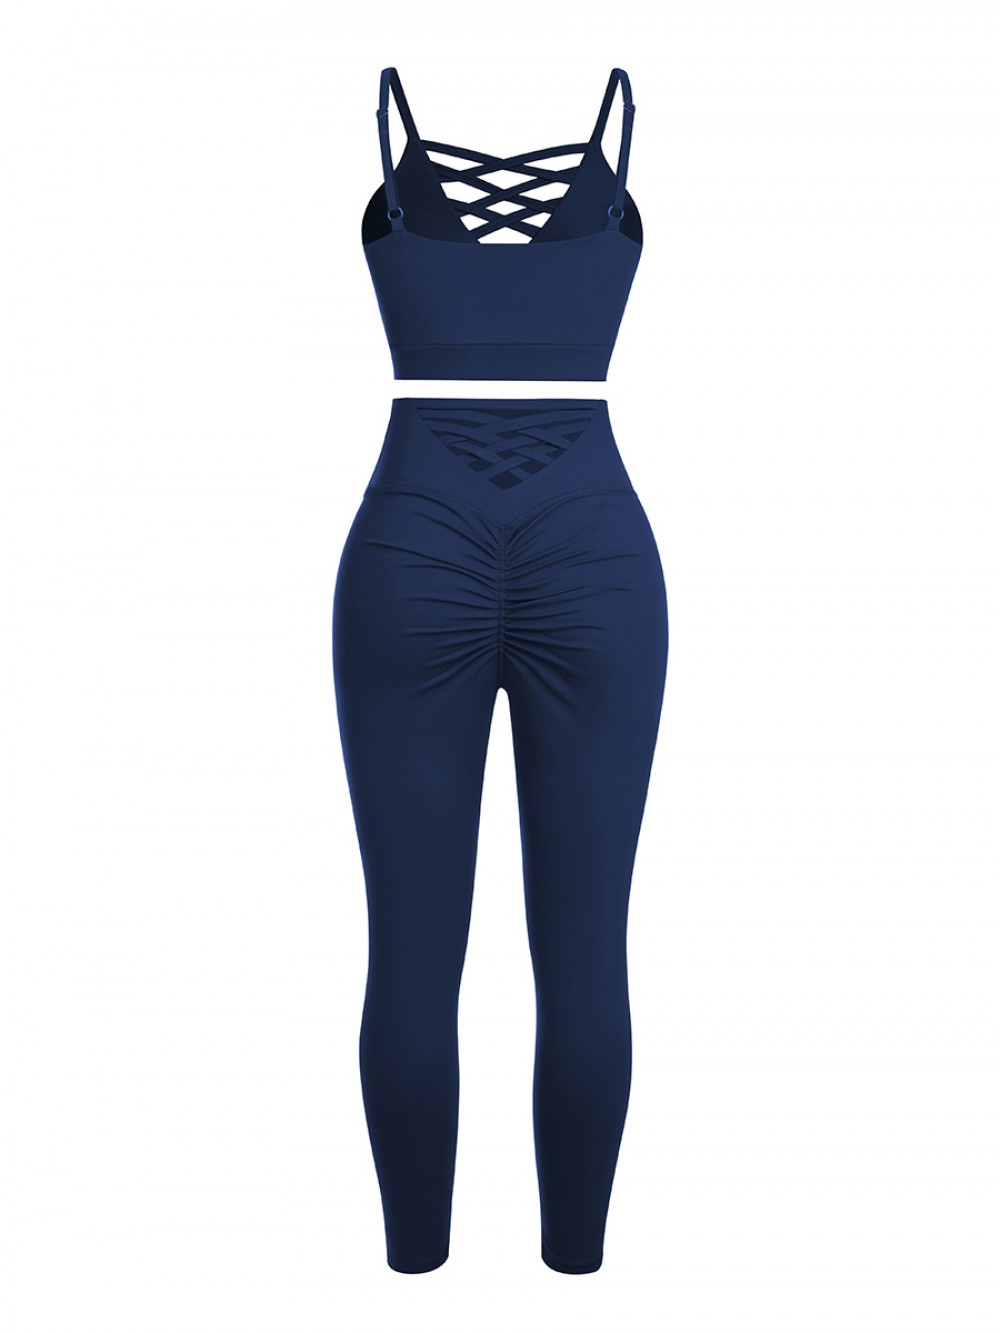 Navy Blue Lace-Up Pleated Gym Sets Full Length For Running